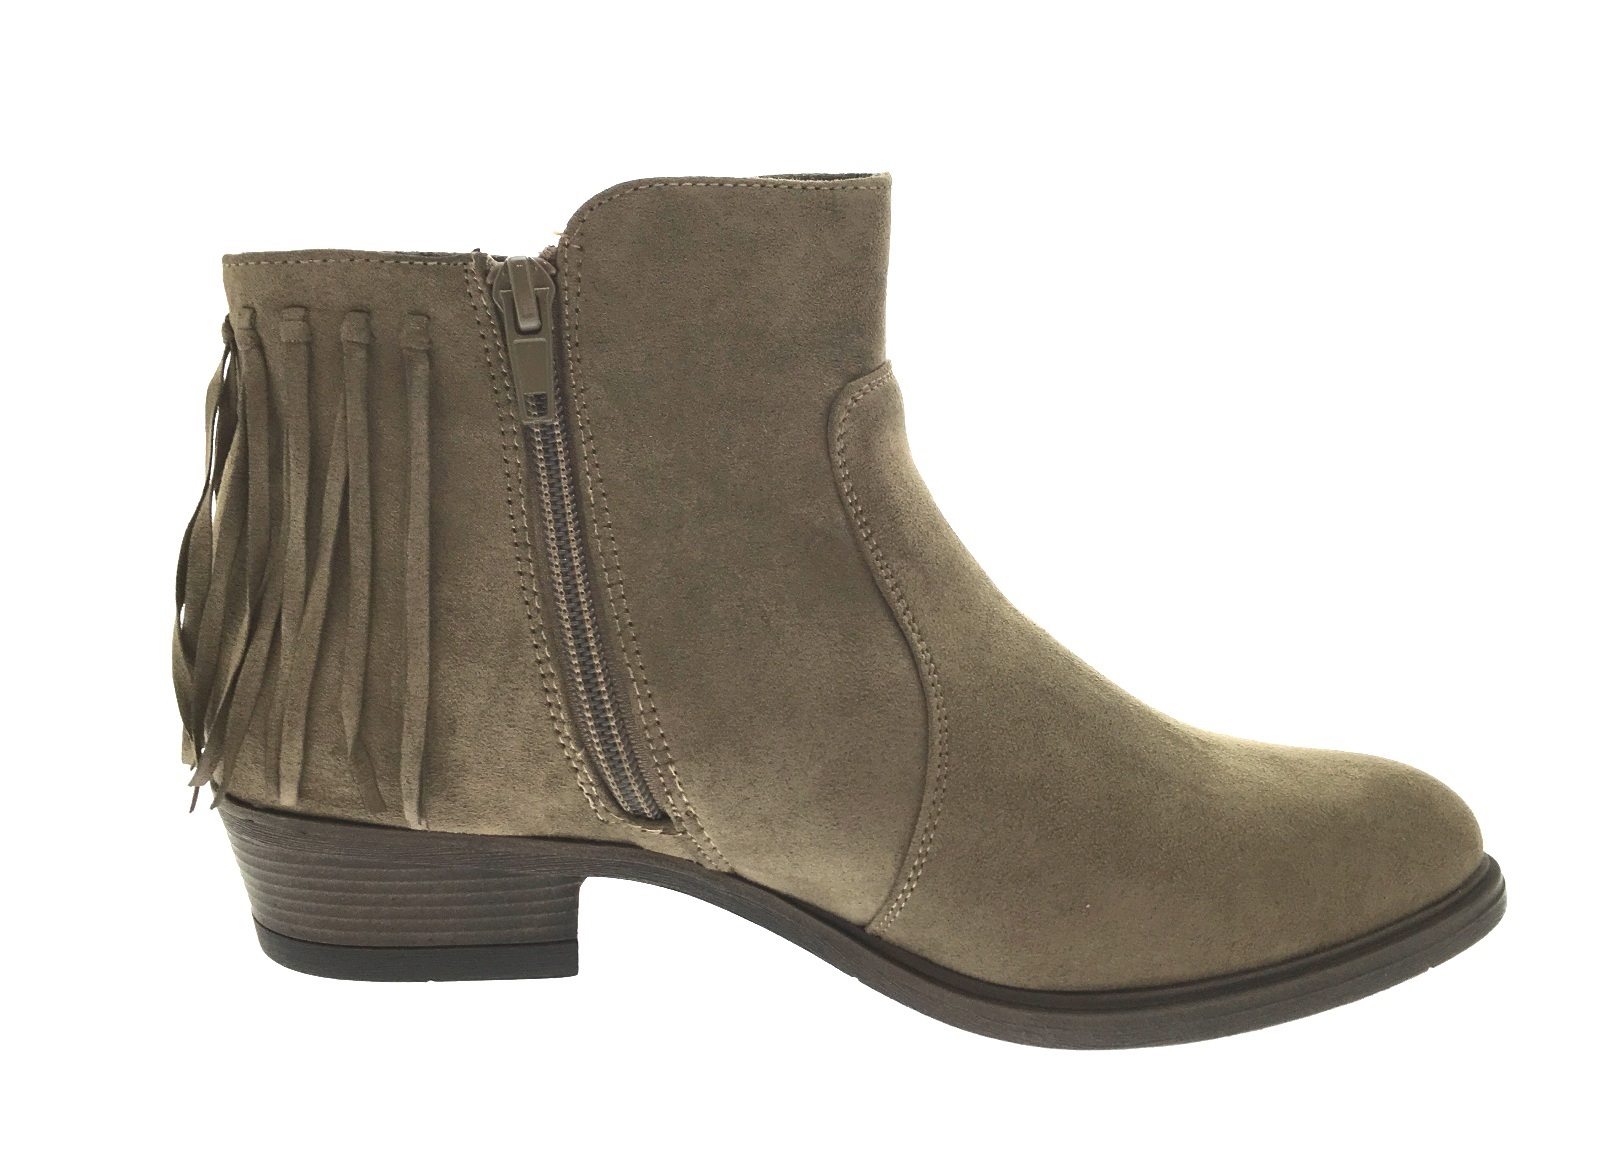 New Womenu0026#39;s Suede Chunky Heel Ankle Boots With Tassel Shoes (088091724) - Boots - JJsHouse